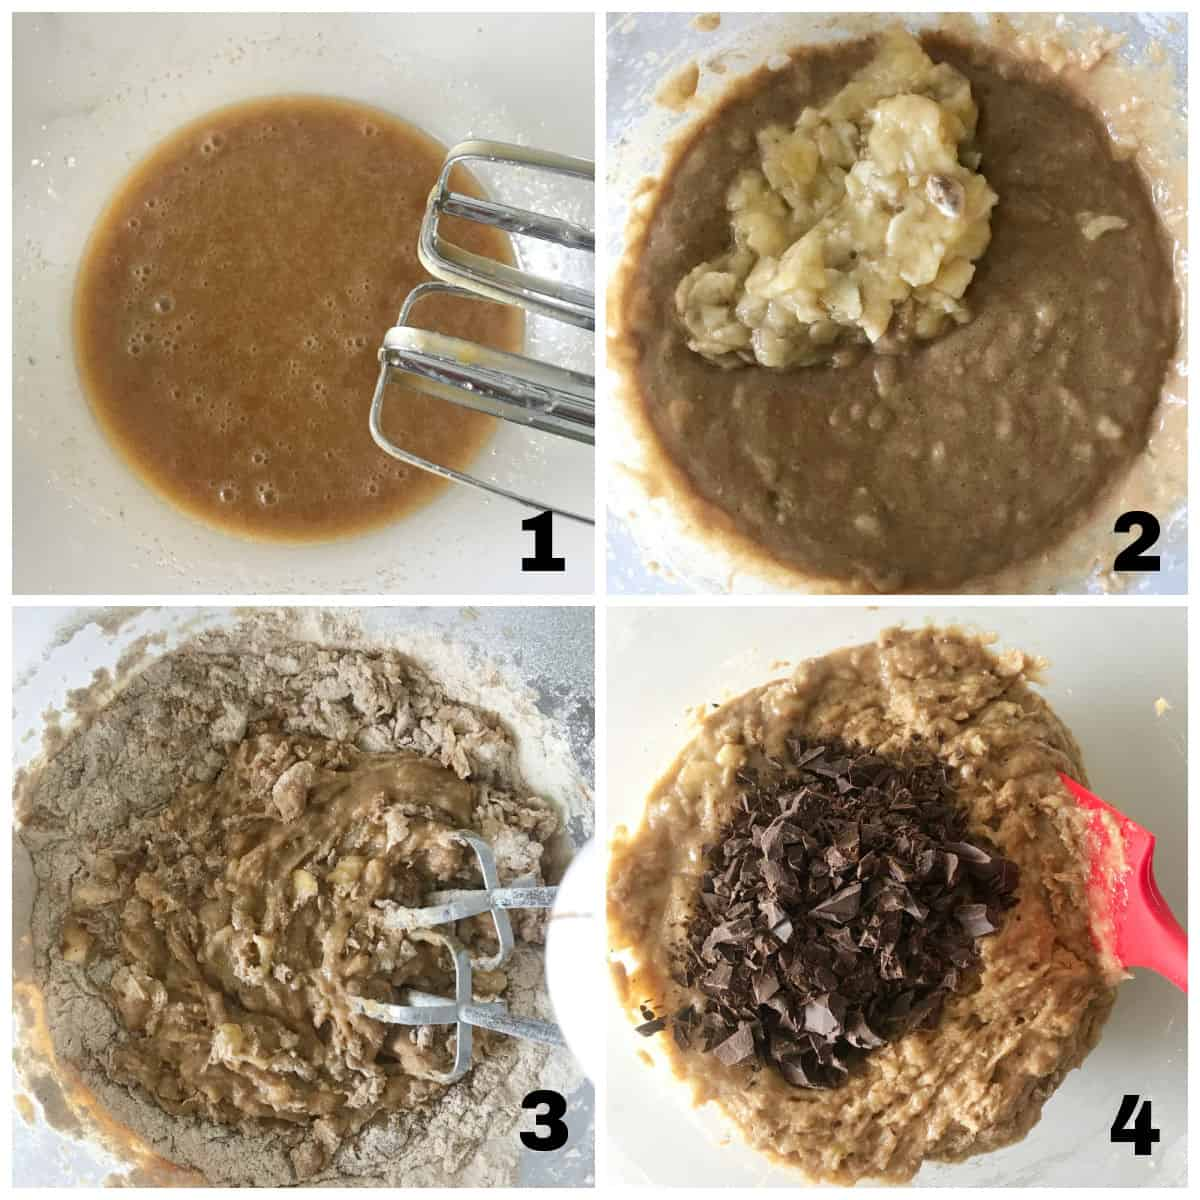 Four image collage showing banana chocolate chip bread process, bowl with batter at different stages